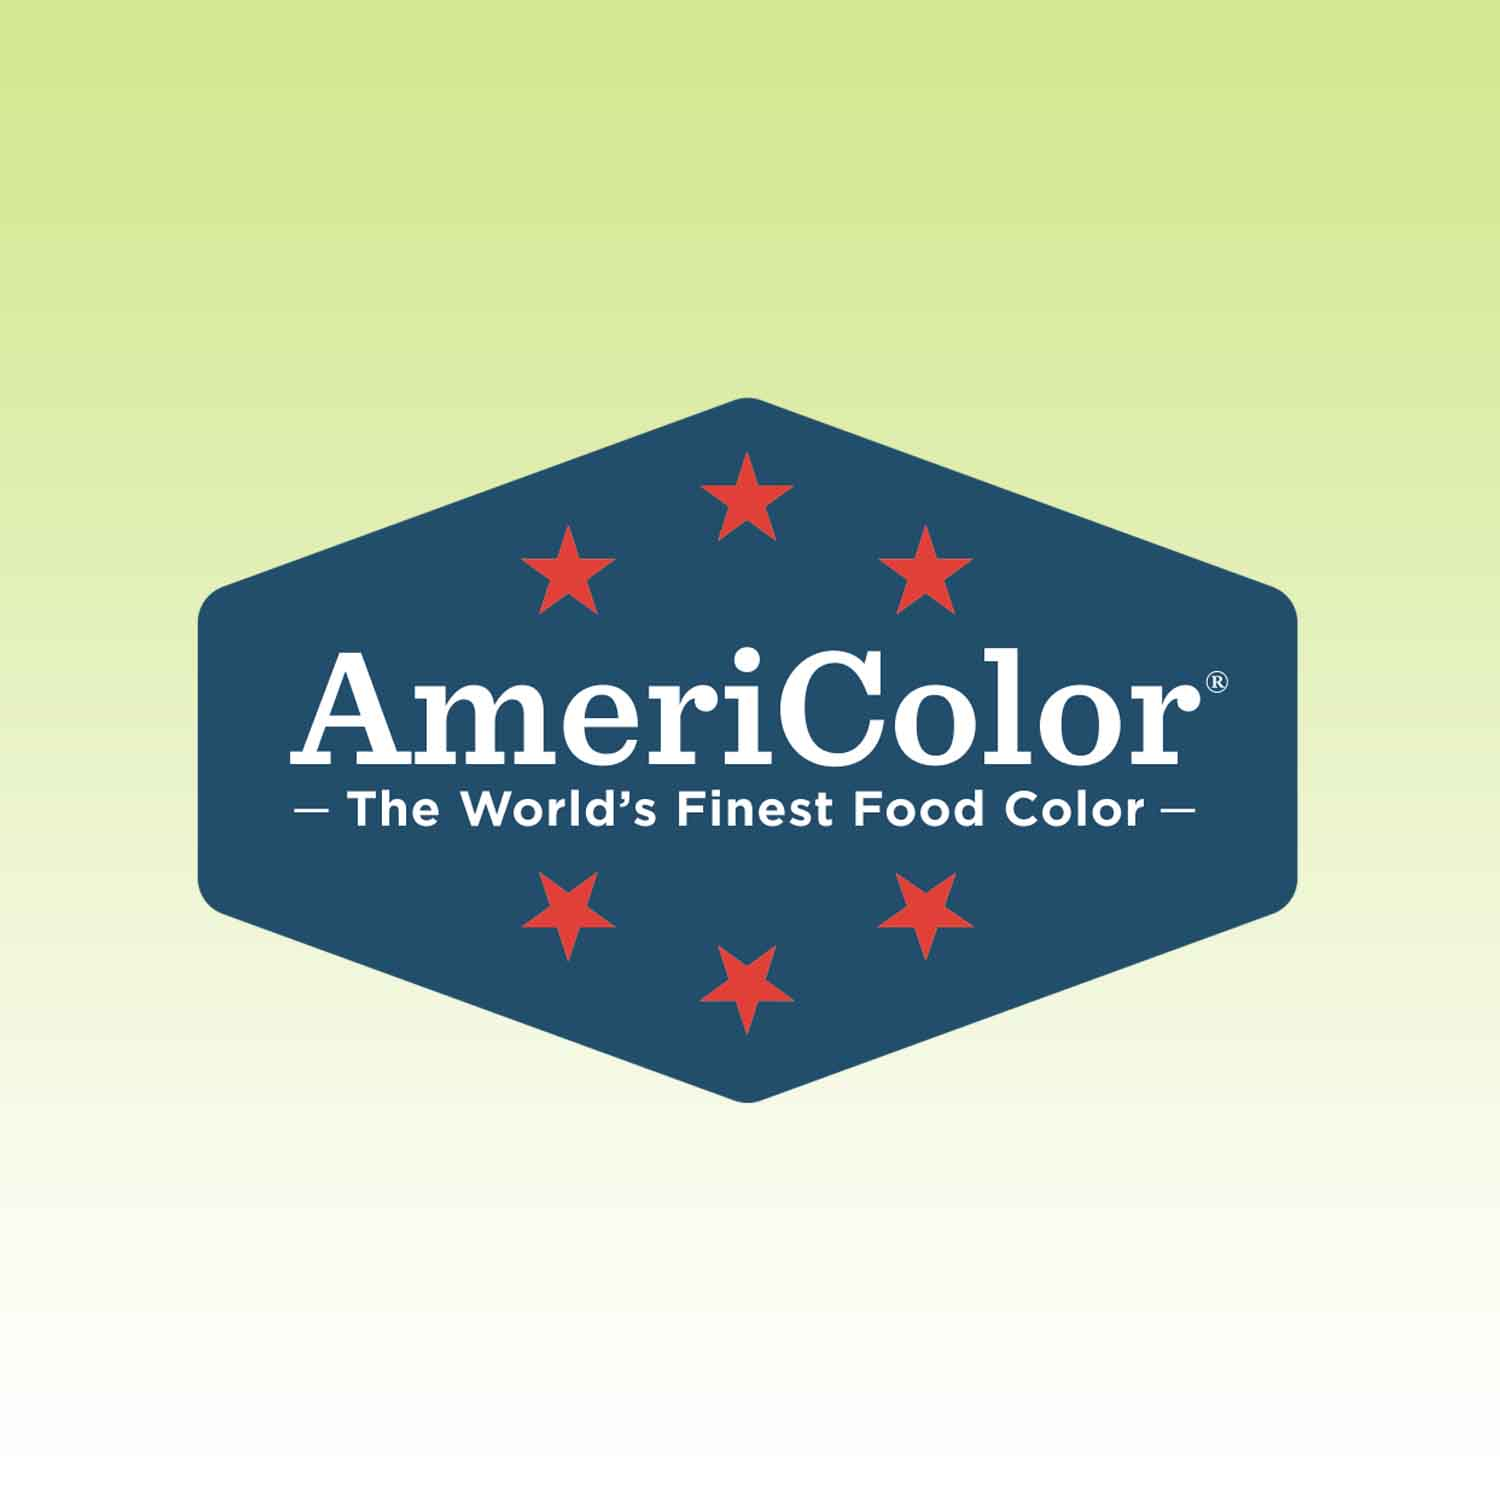 Avocado Americolor® AmeriMist™ Air Brush Food Color